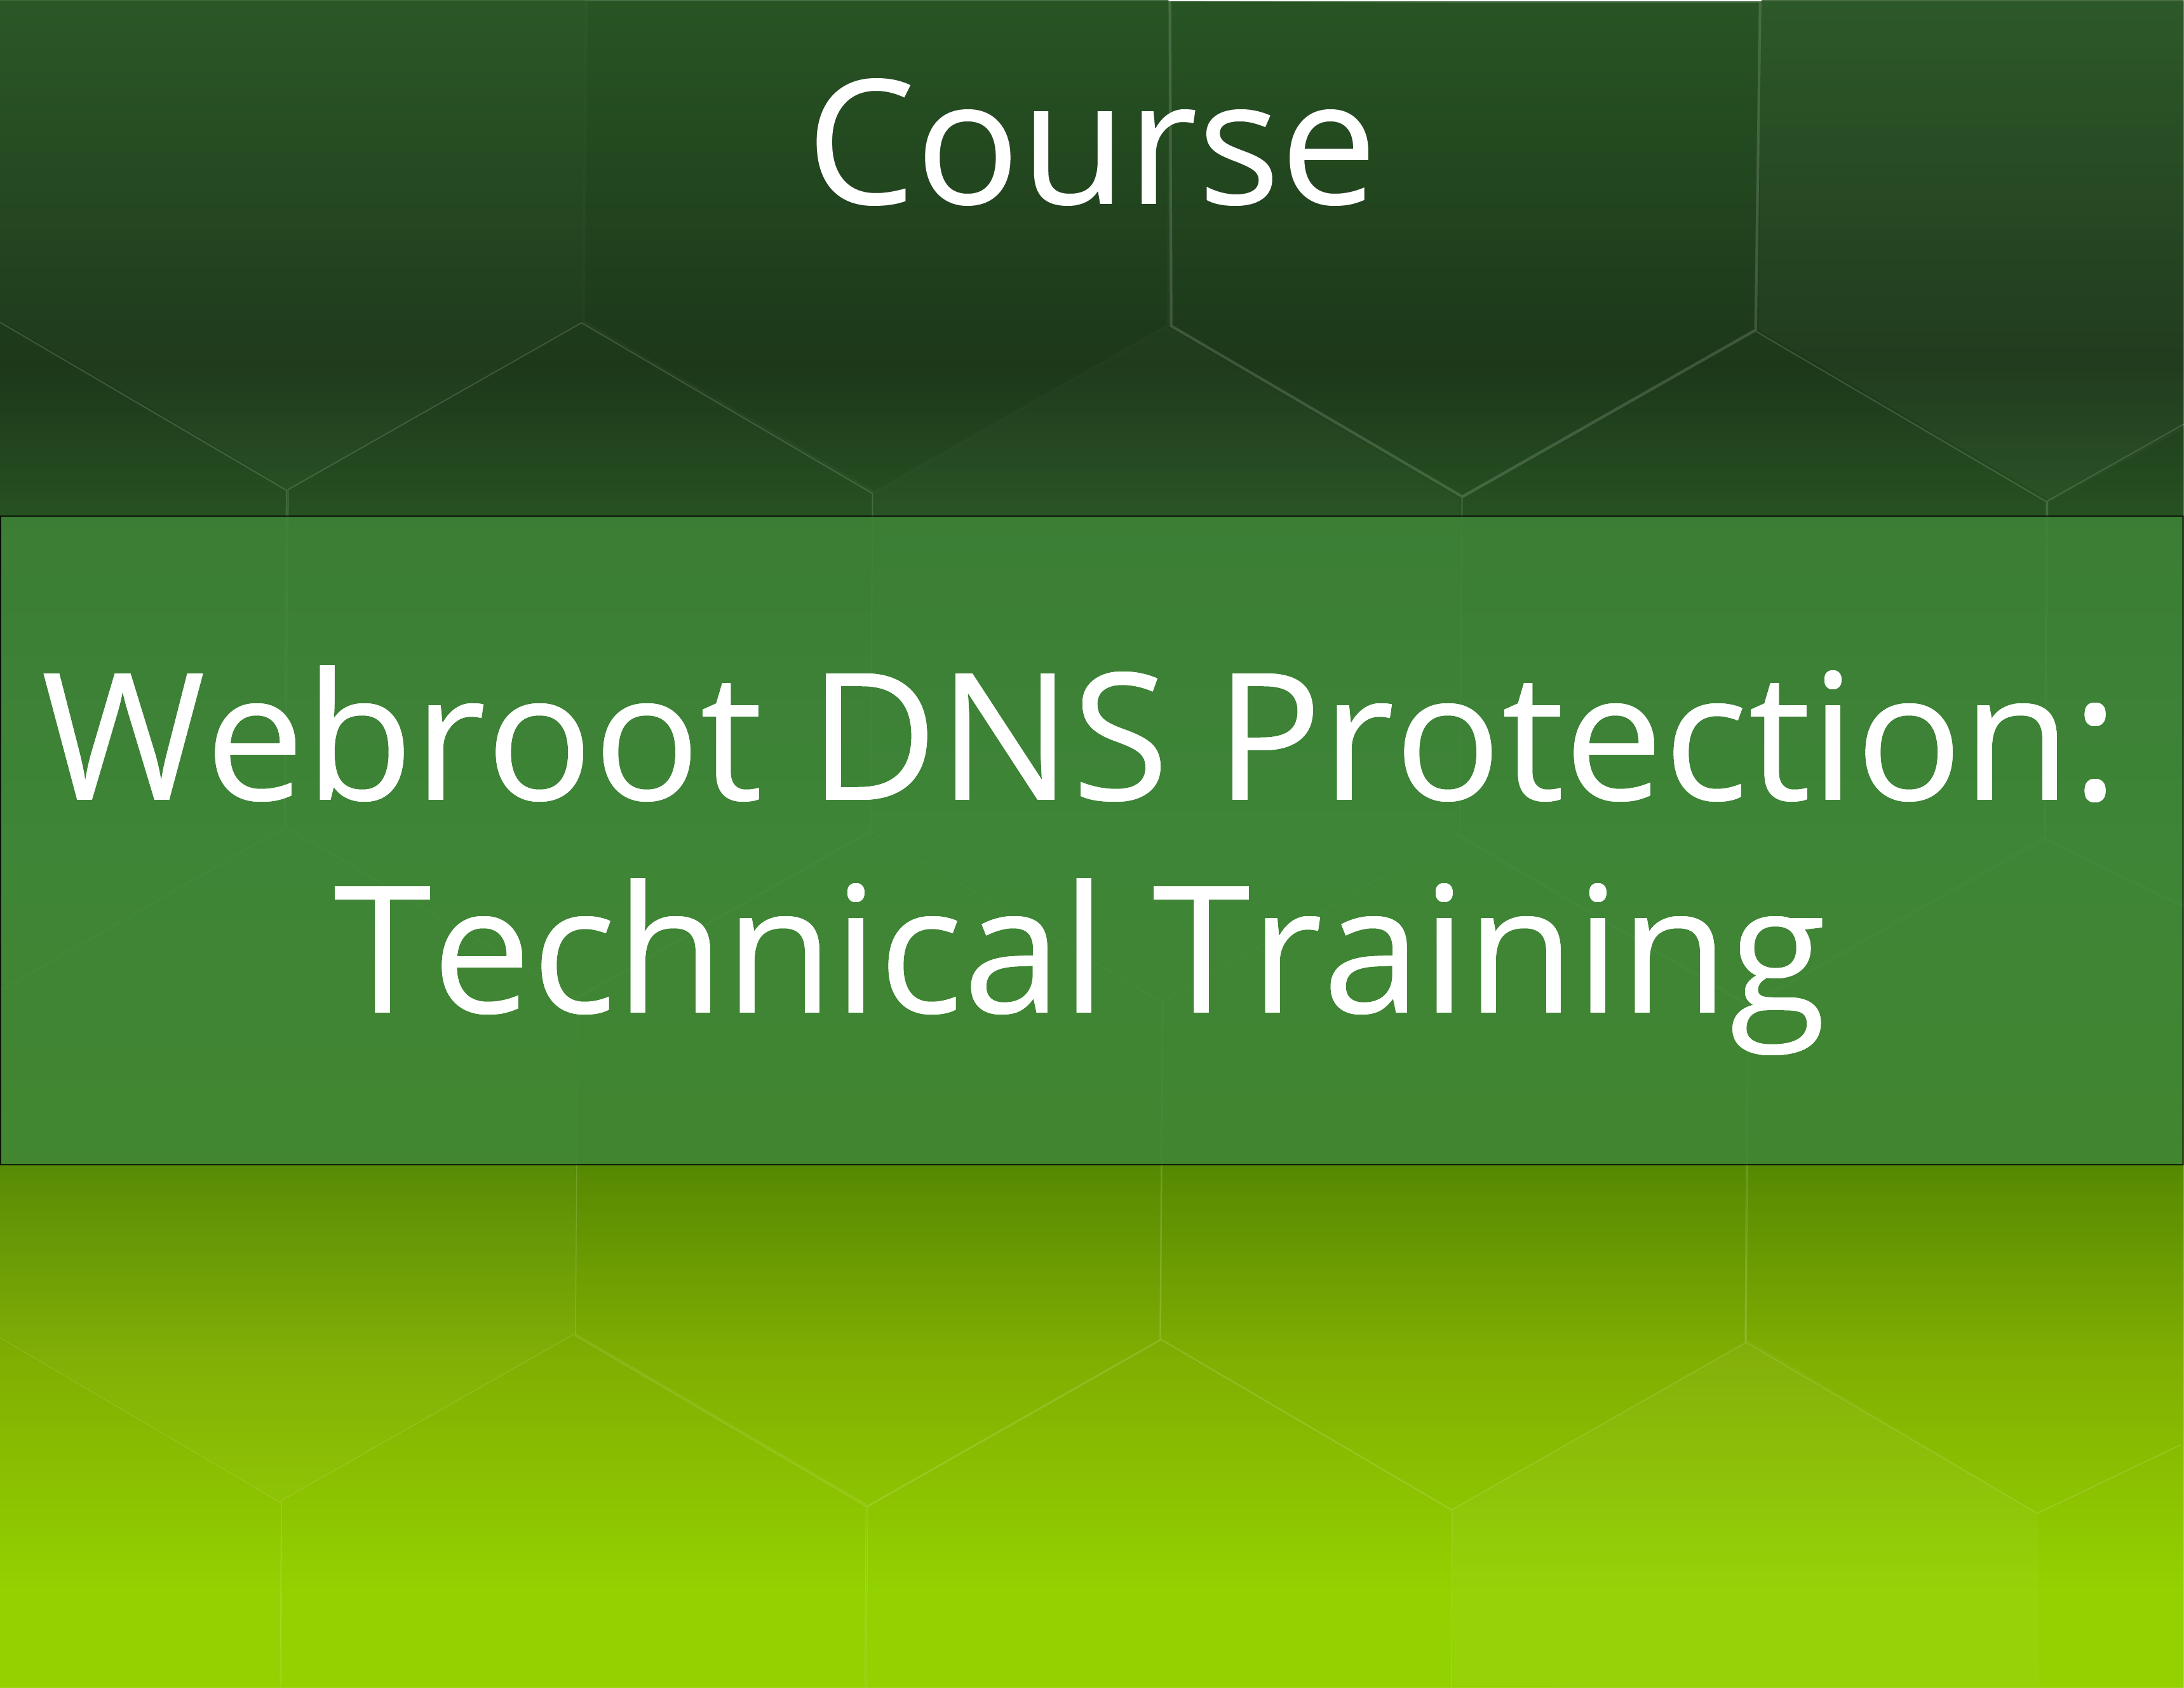 Webroot SecureAnywhere DNS Protection Technical Training